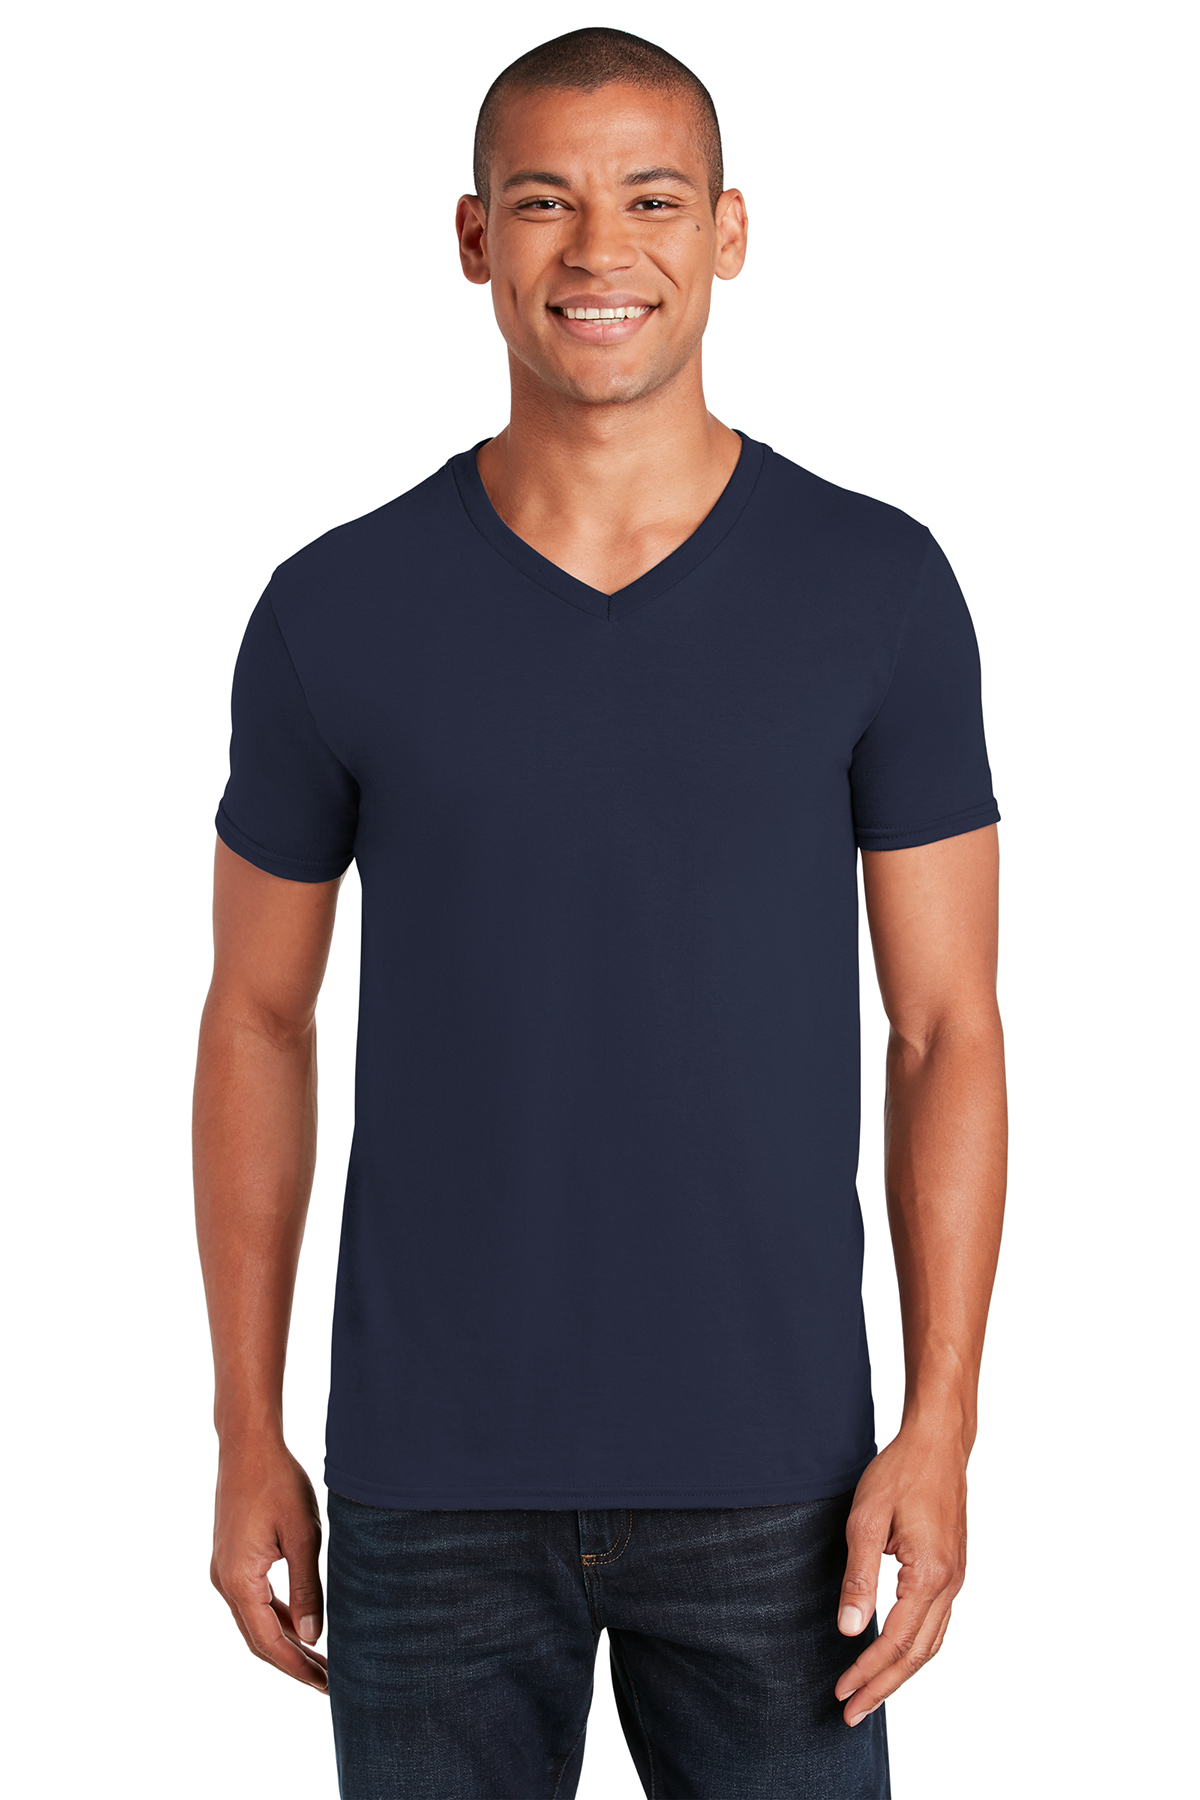 b46fc28a2 Gildan Softstyle® V-Neck T-Shirt | Ring Spun | T-Shirts | SanMar